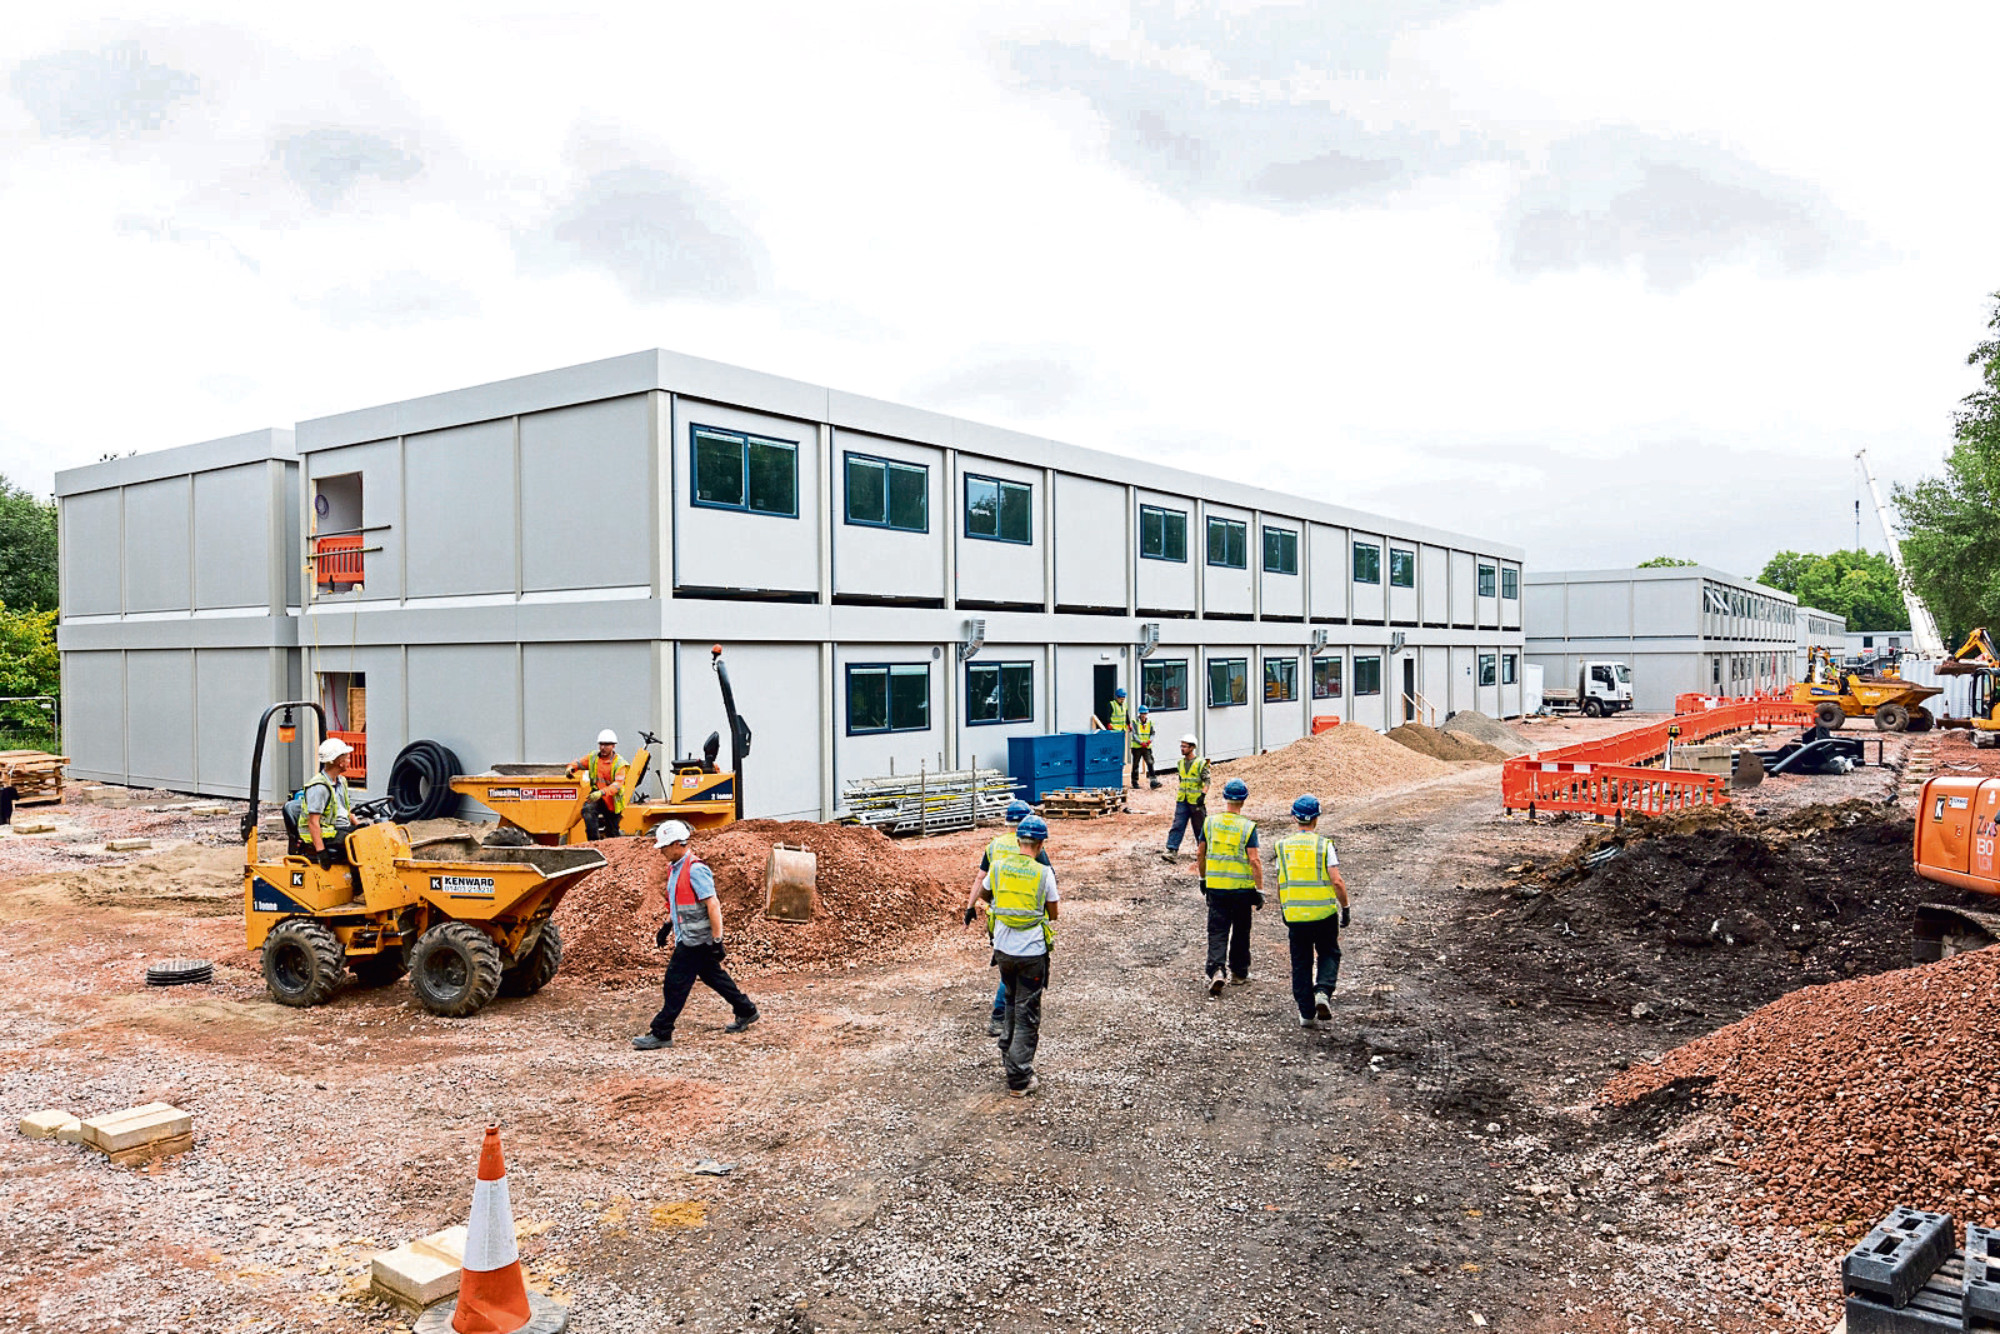 Kensington Aldridge Academy under construction in 2017 - it took just nine weeks to be built